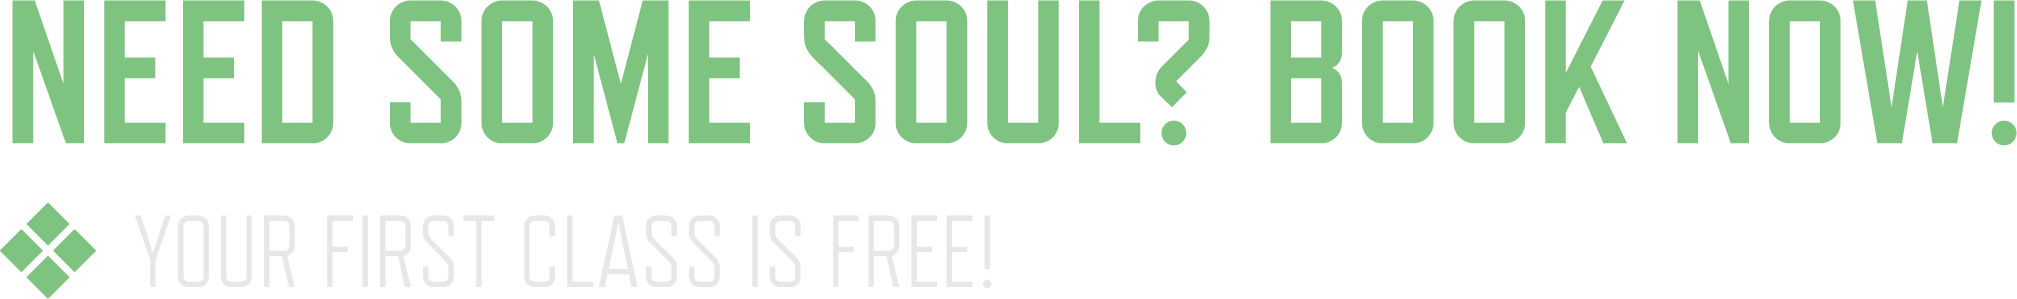 NEED SOME SOUL.png